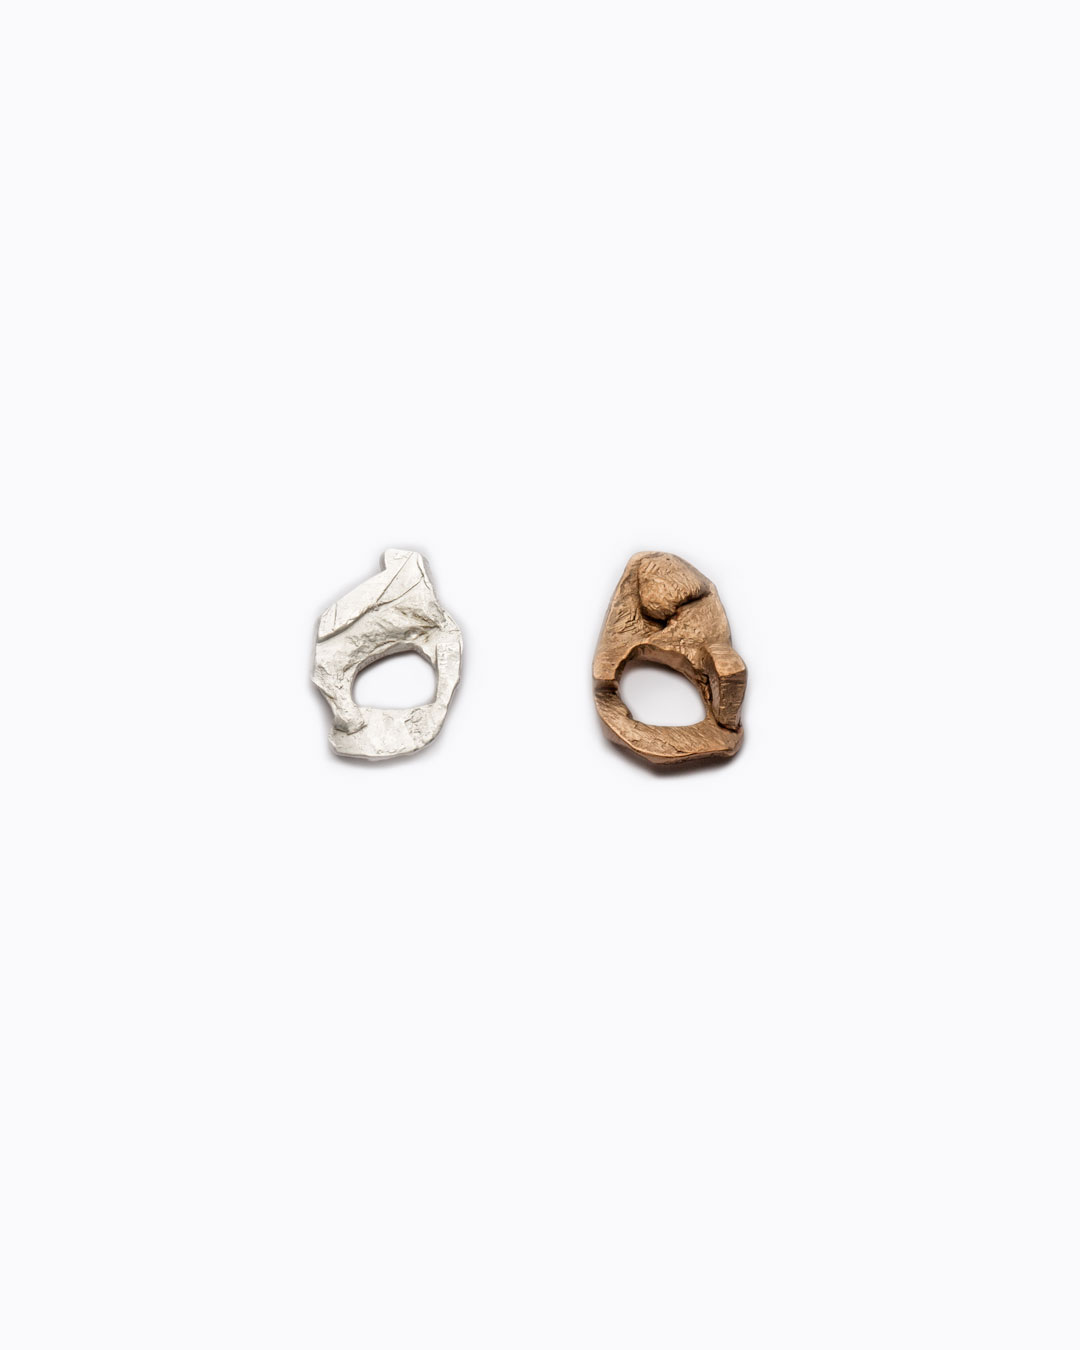 Iris Bodemer, untitled, 2012, ring; bronze, 30 x 55 x 10 mm (right), €750